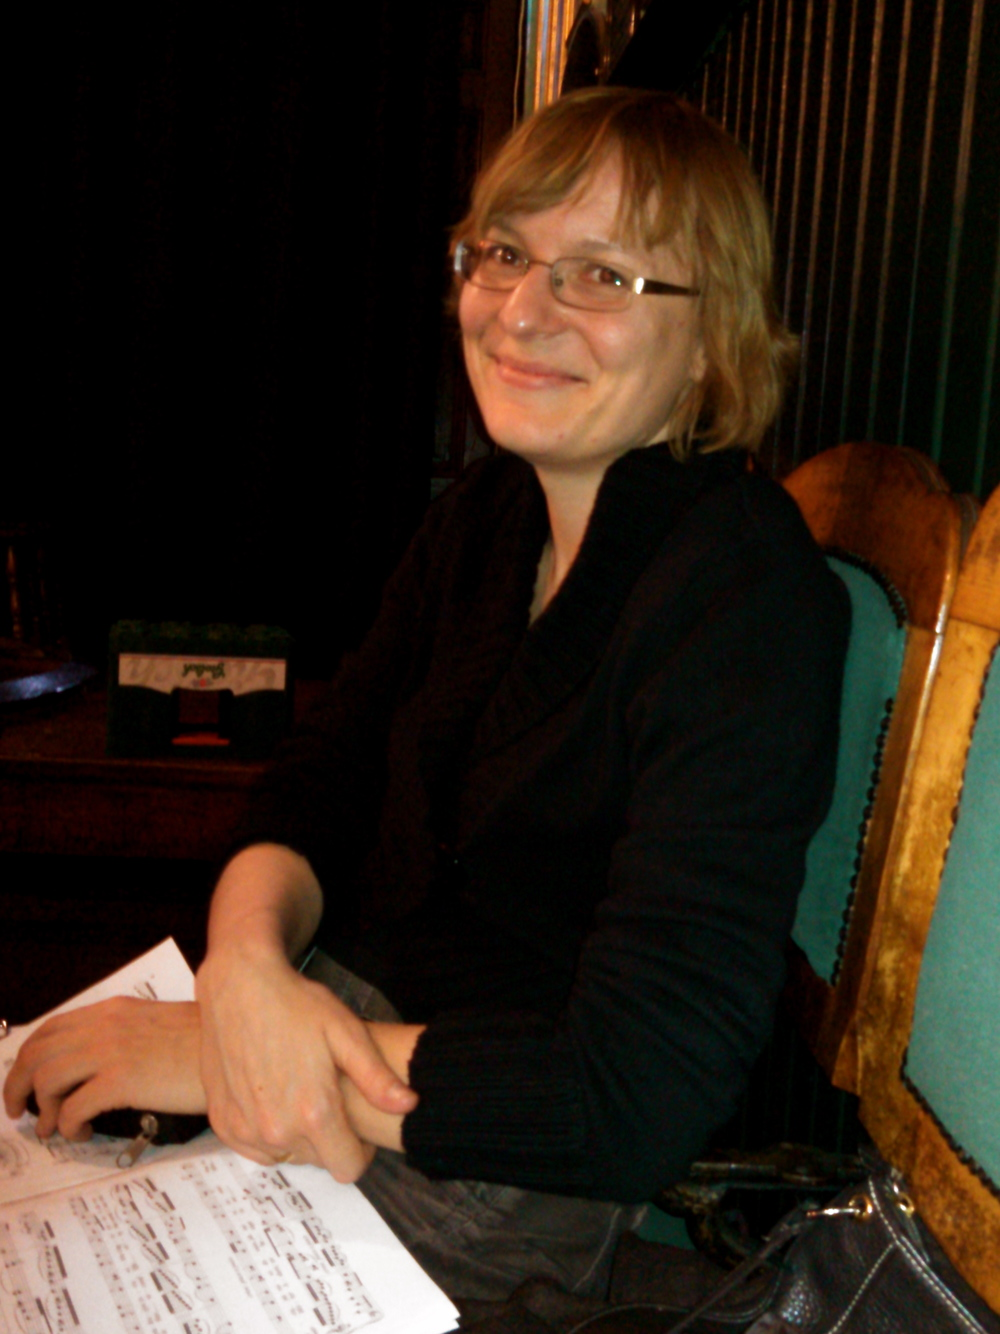 Katarzyna at rehearsal at the King's Head Theatre, London.